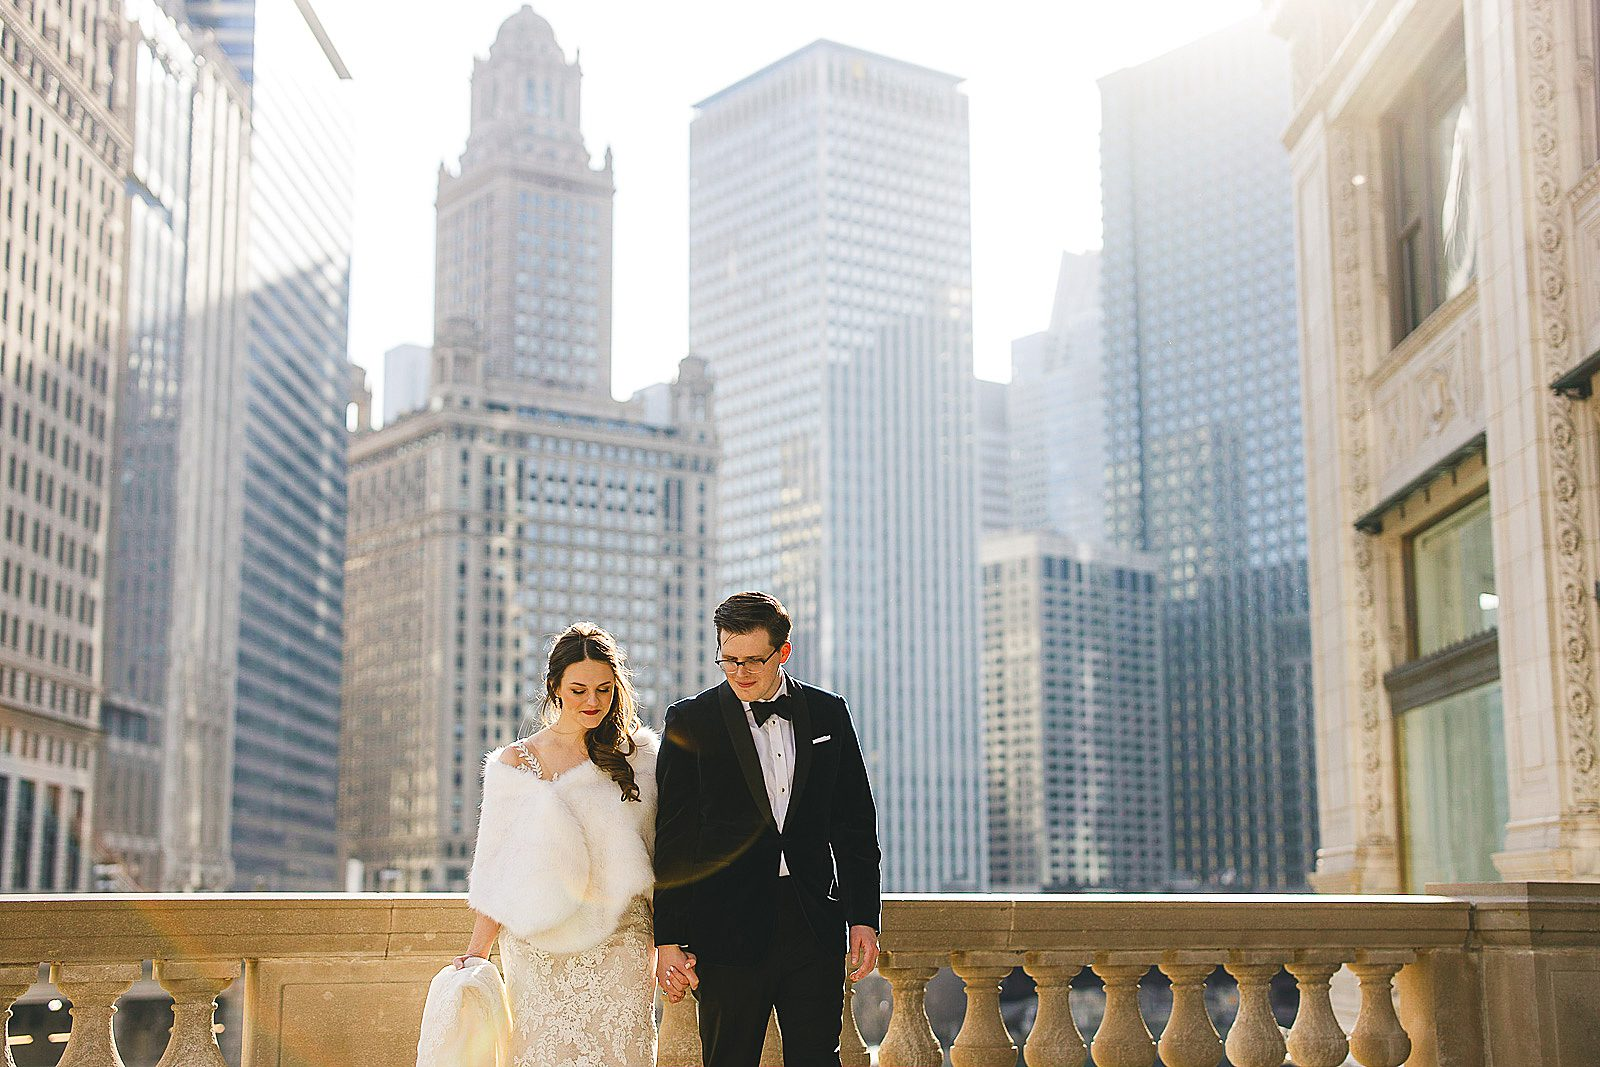 17 chicago wedding photograhy - The Wedding of Samantha + Kyle in Chicago